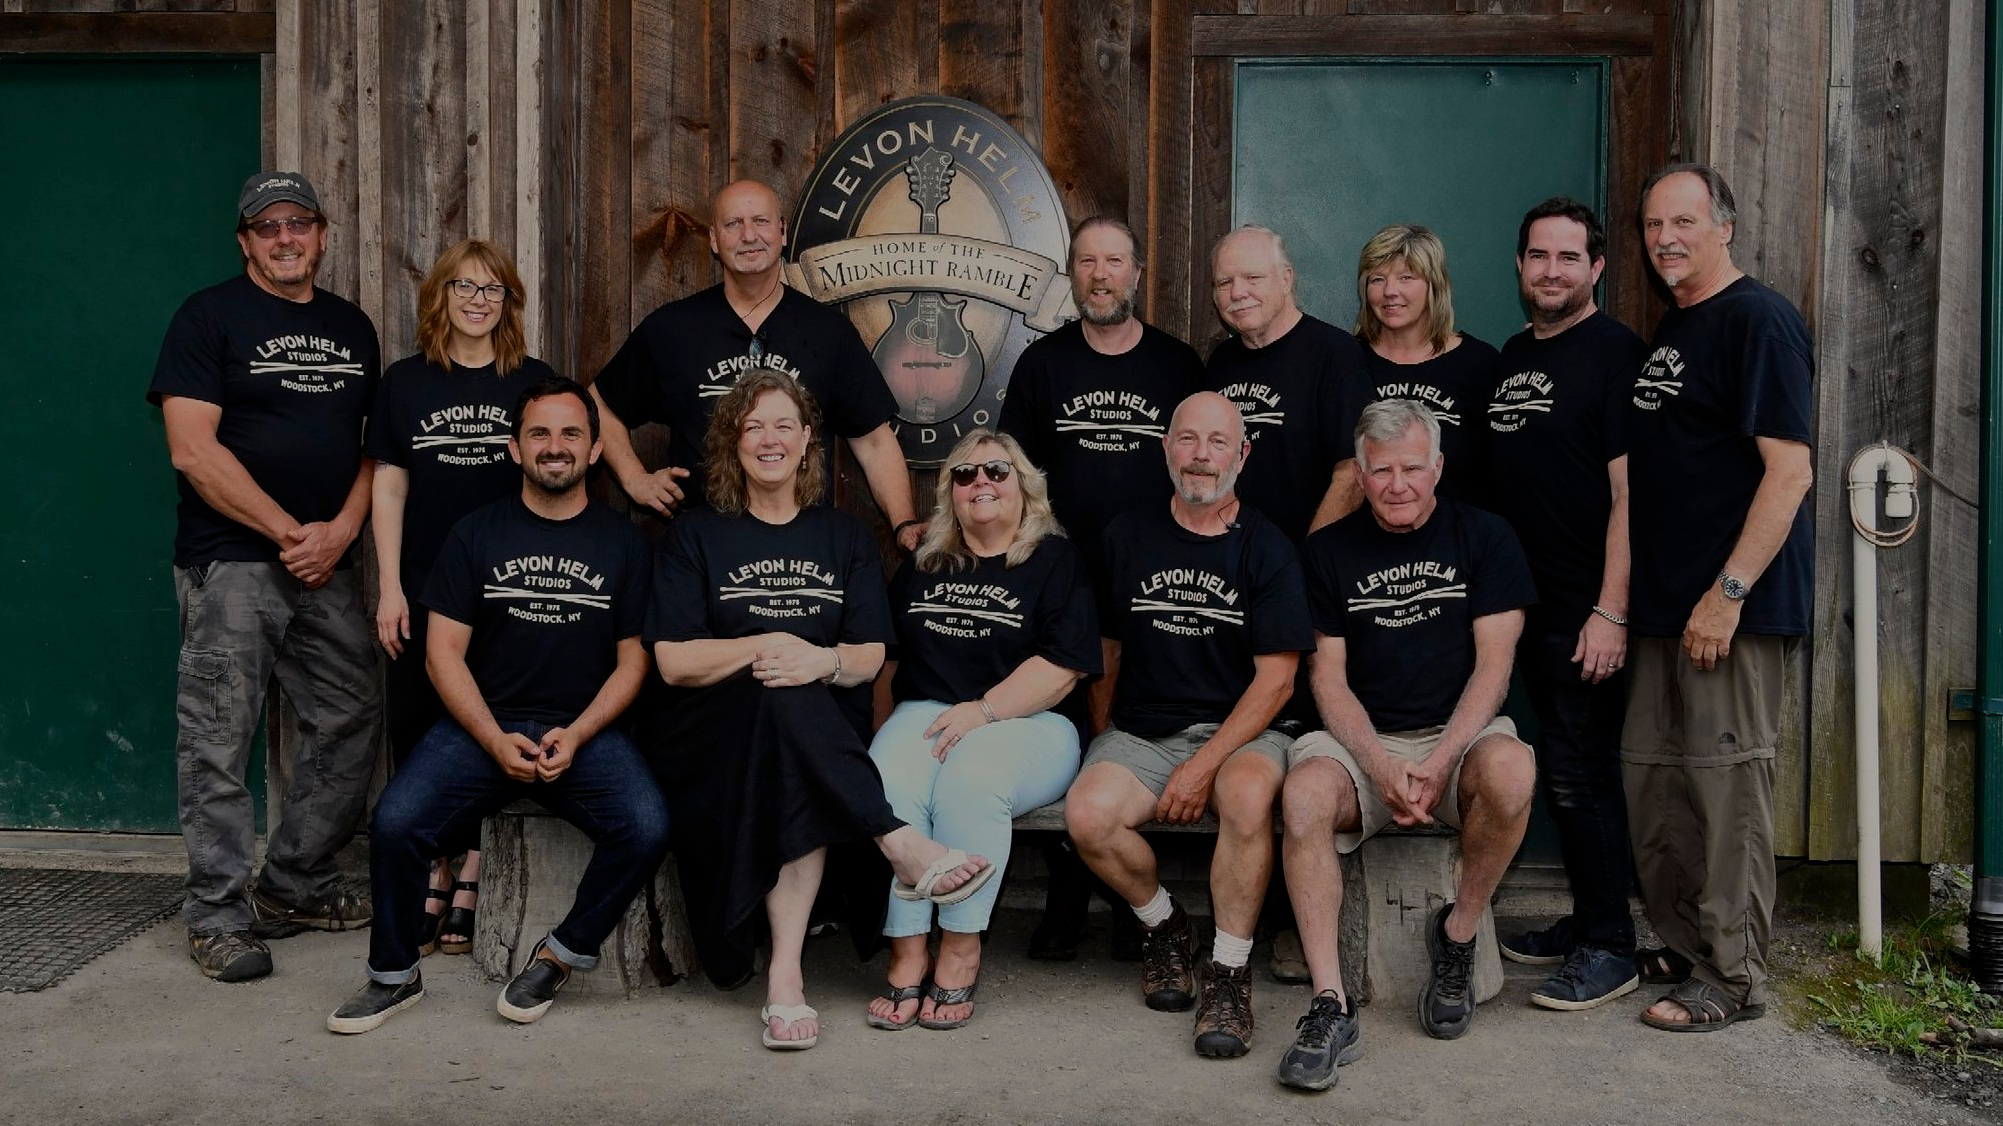 Back row (L to R): Tom Stevens, Christy Newman, Joe Wells, Mike Sheehan, Steve Farrell, Mindy Kennedy, Brendan McDonough, Jim Rice Front row (L to R): Drew Frankel, Suzanne Stevens, Cindy Wells, Dave Ghent, Bill Speight  Photo © James Rice Photography, 2018